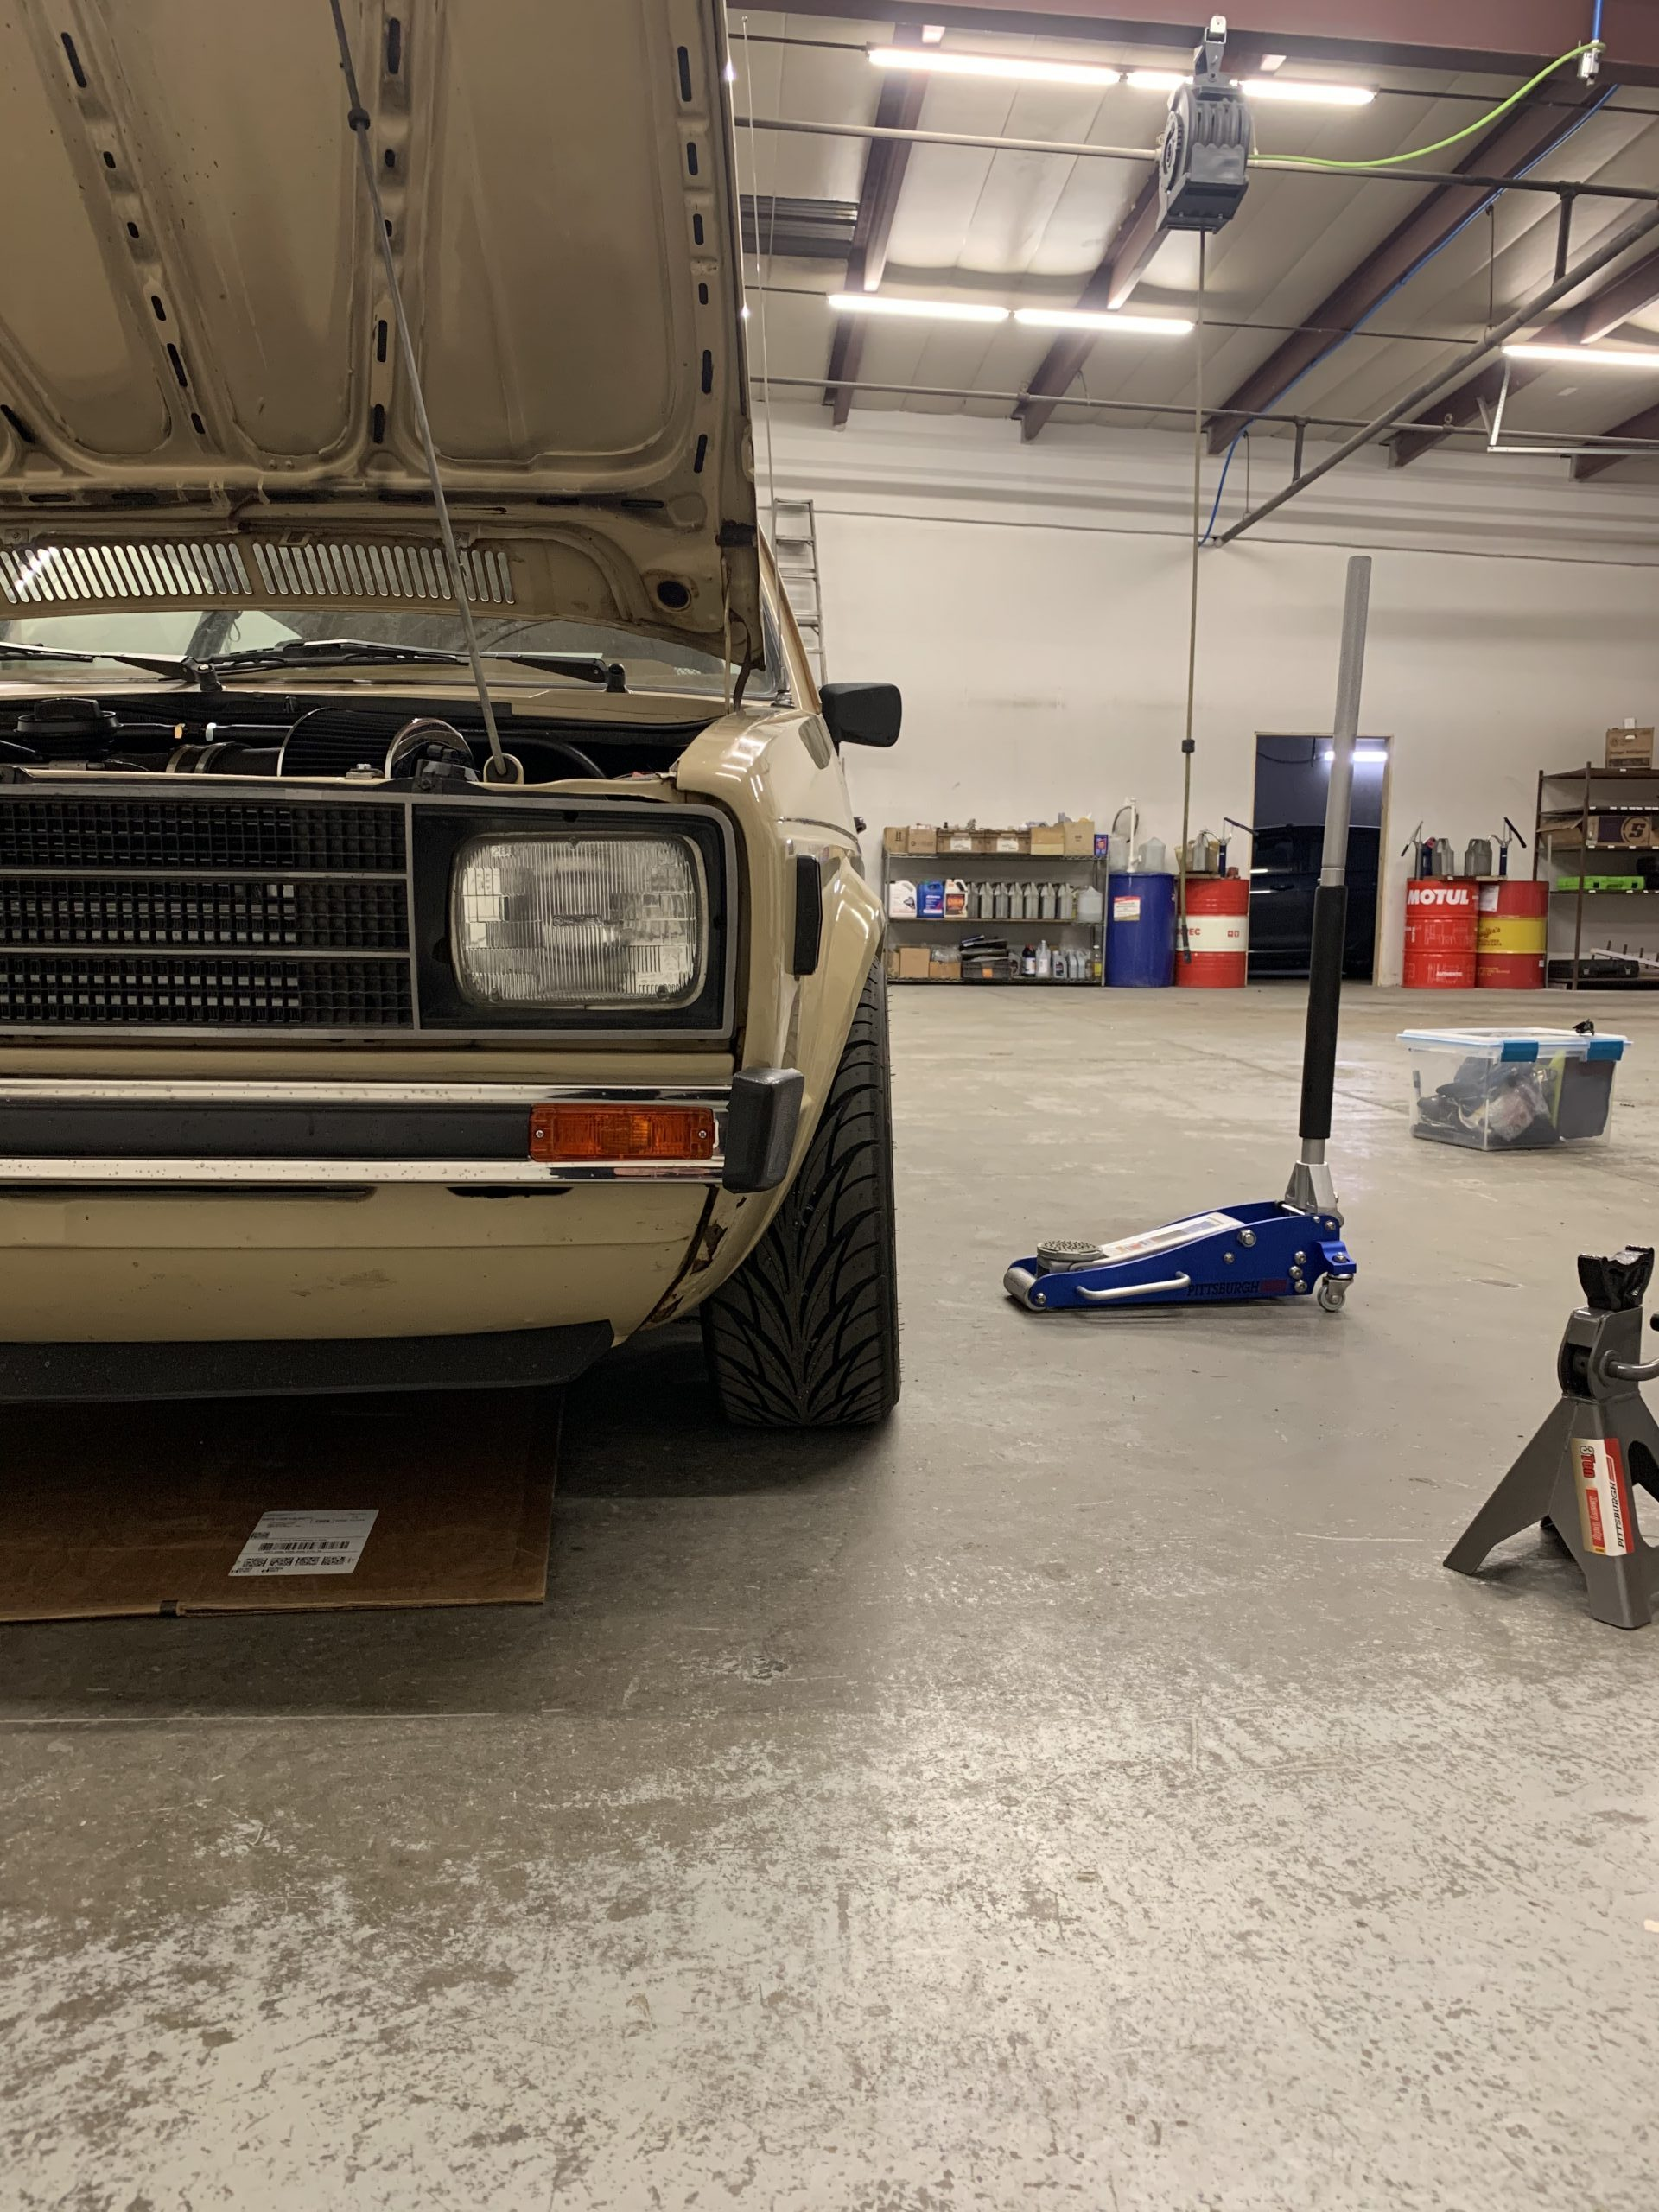 1980 VW Rabbit TDI swap shop Feb 27, 1 08 59 PM